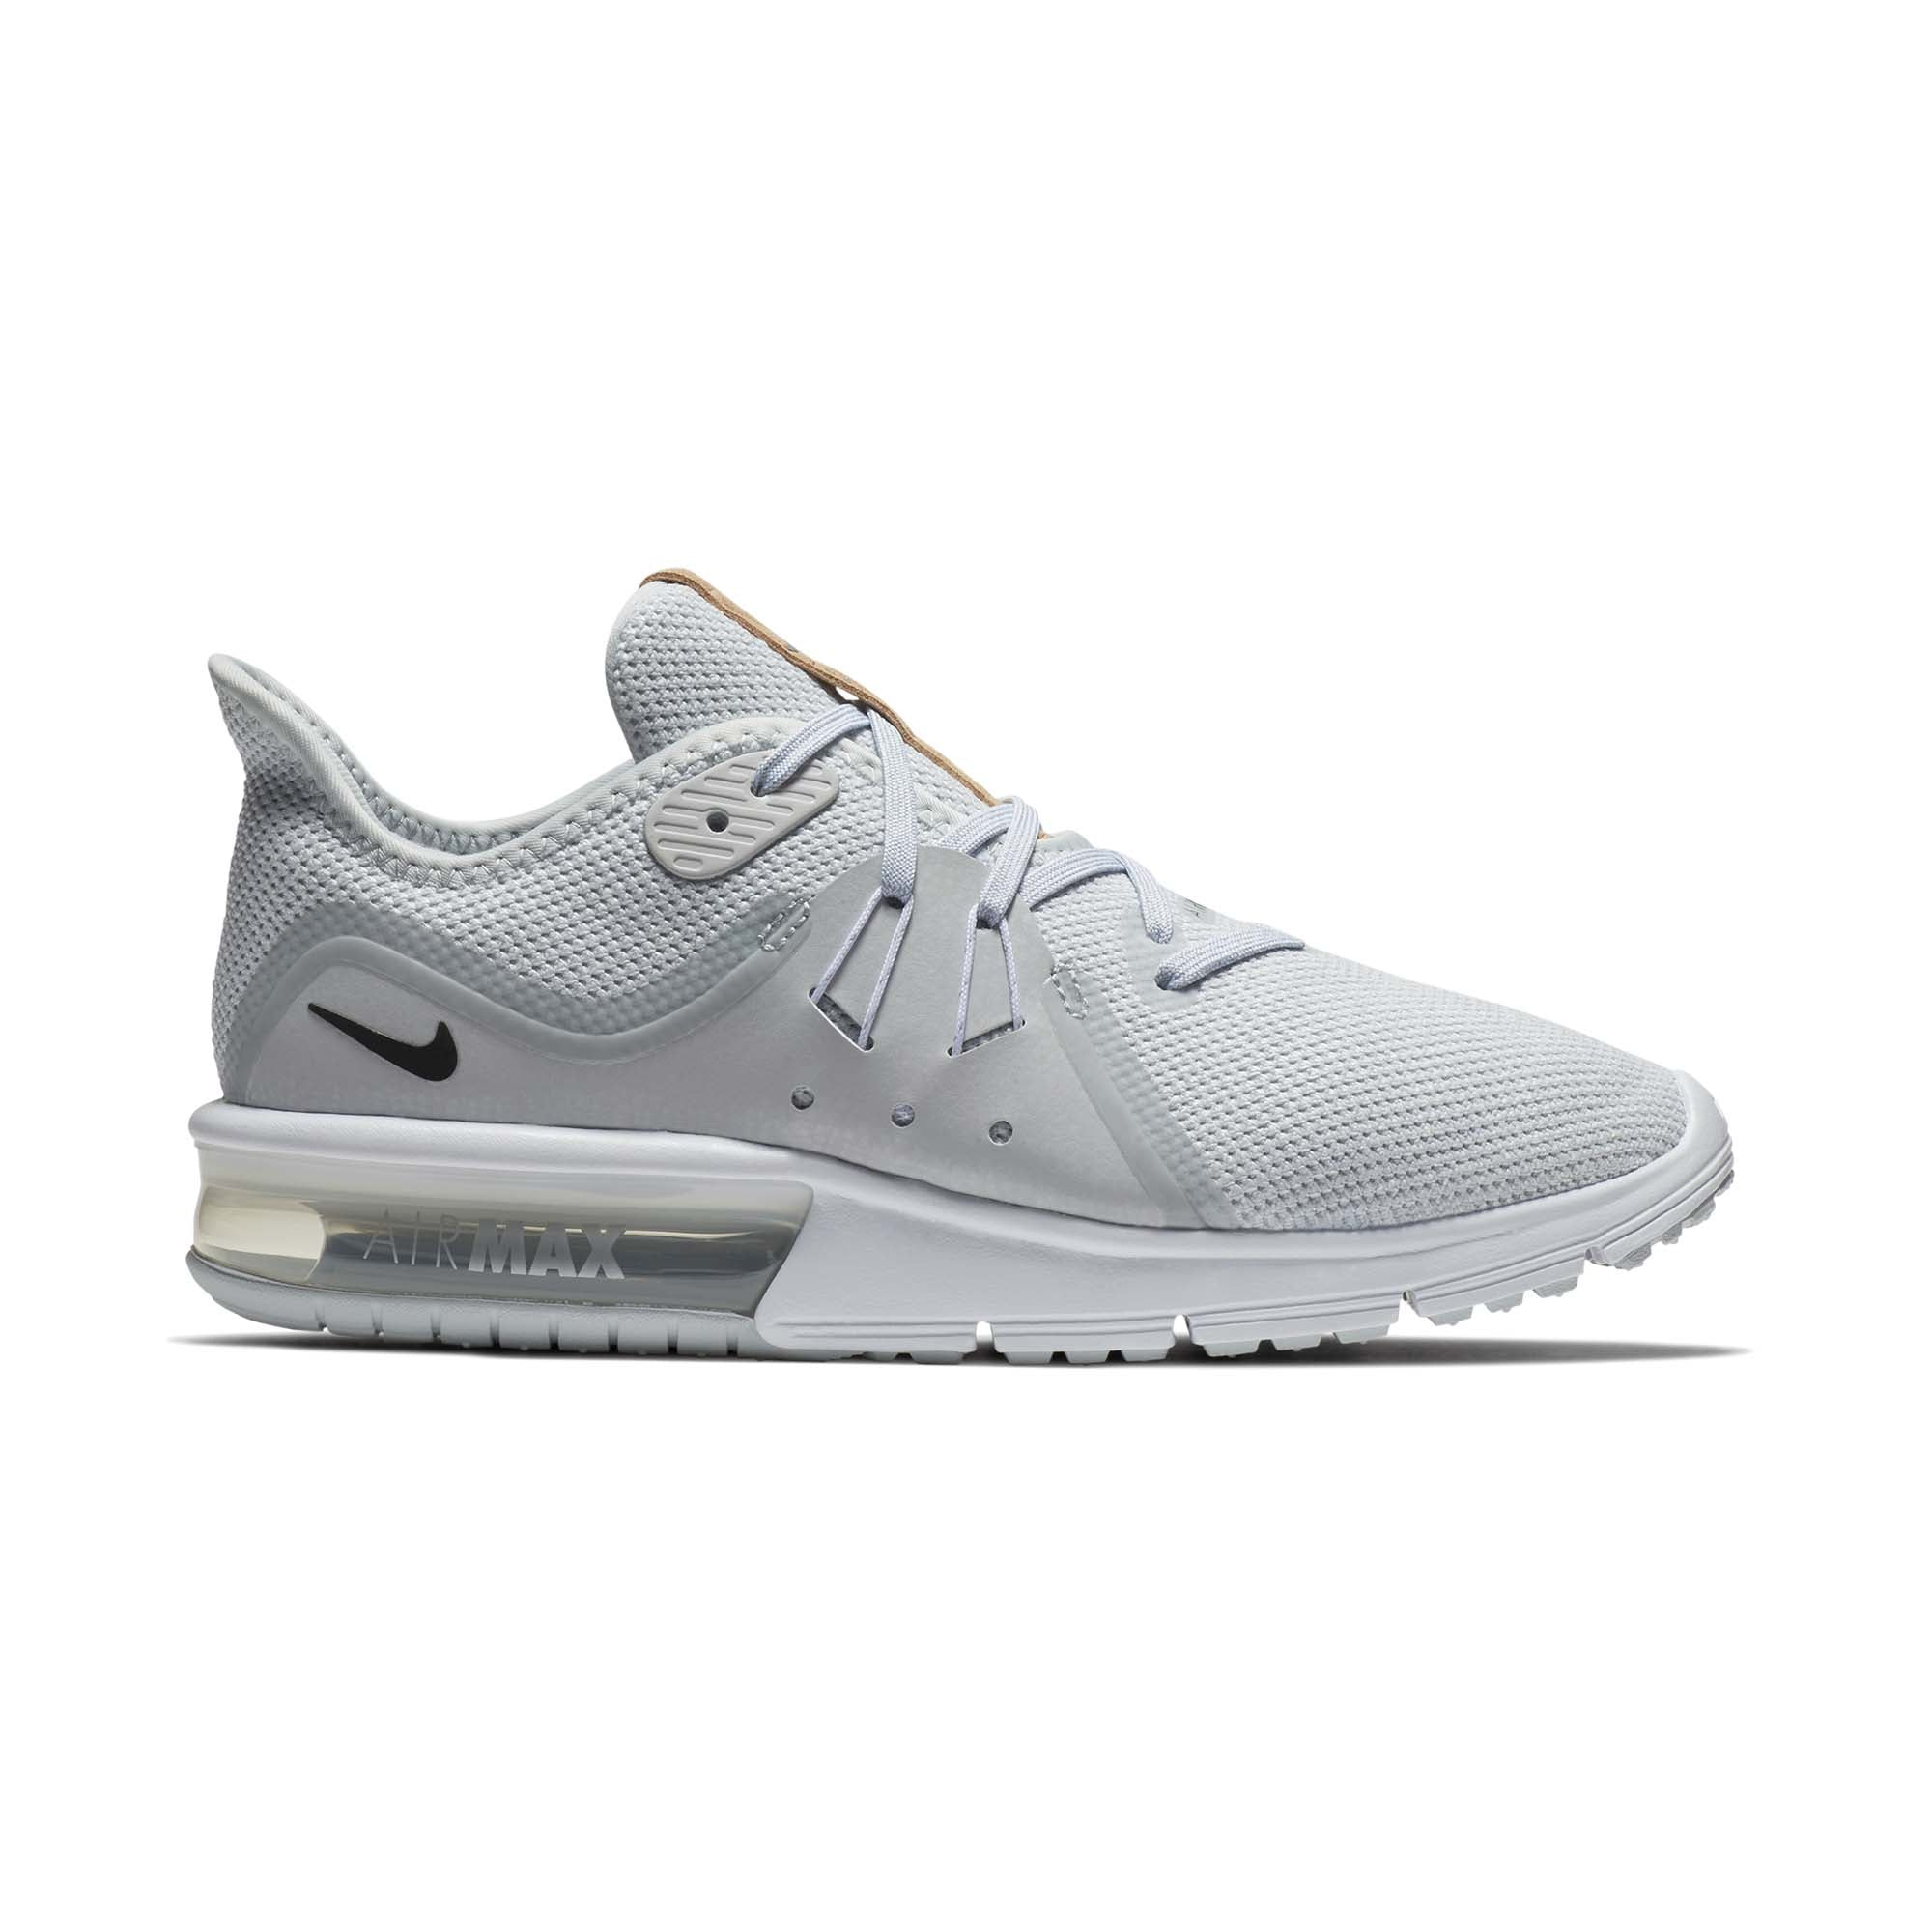 Nike Air Max Sequent 3 Pure Platinum/Black/White Womens Running 2018 ALL NEW